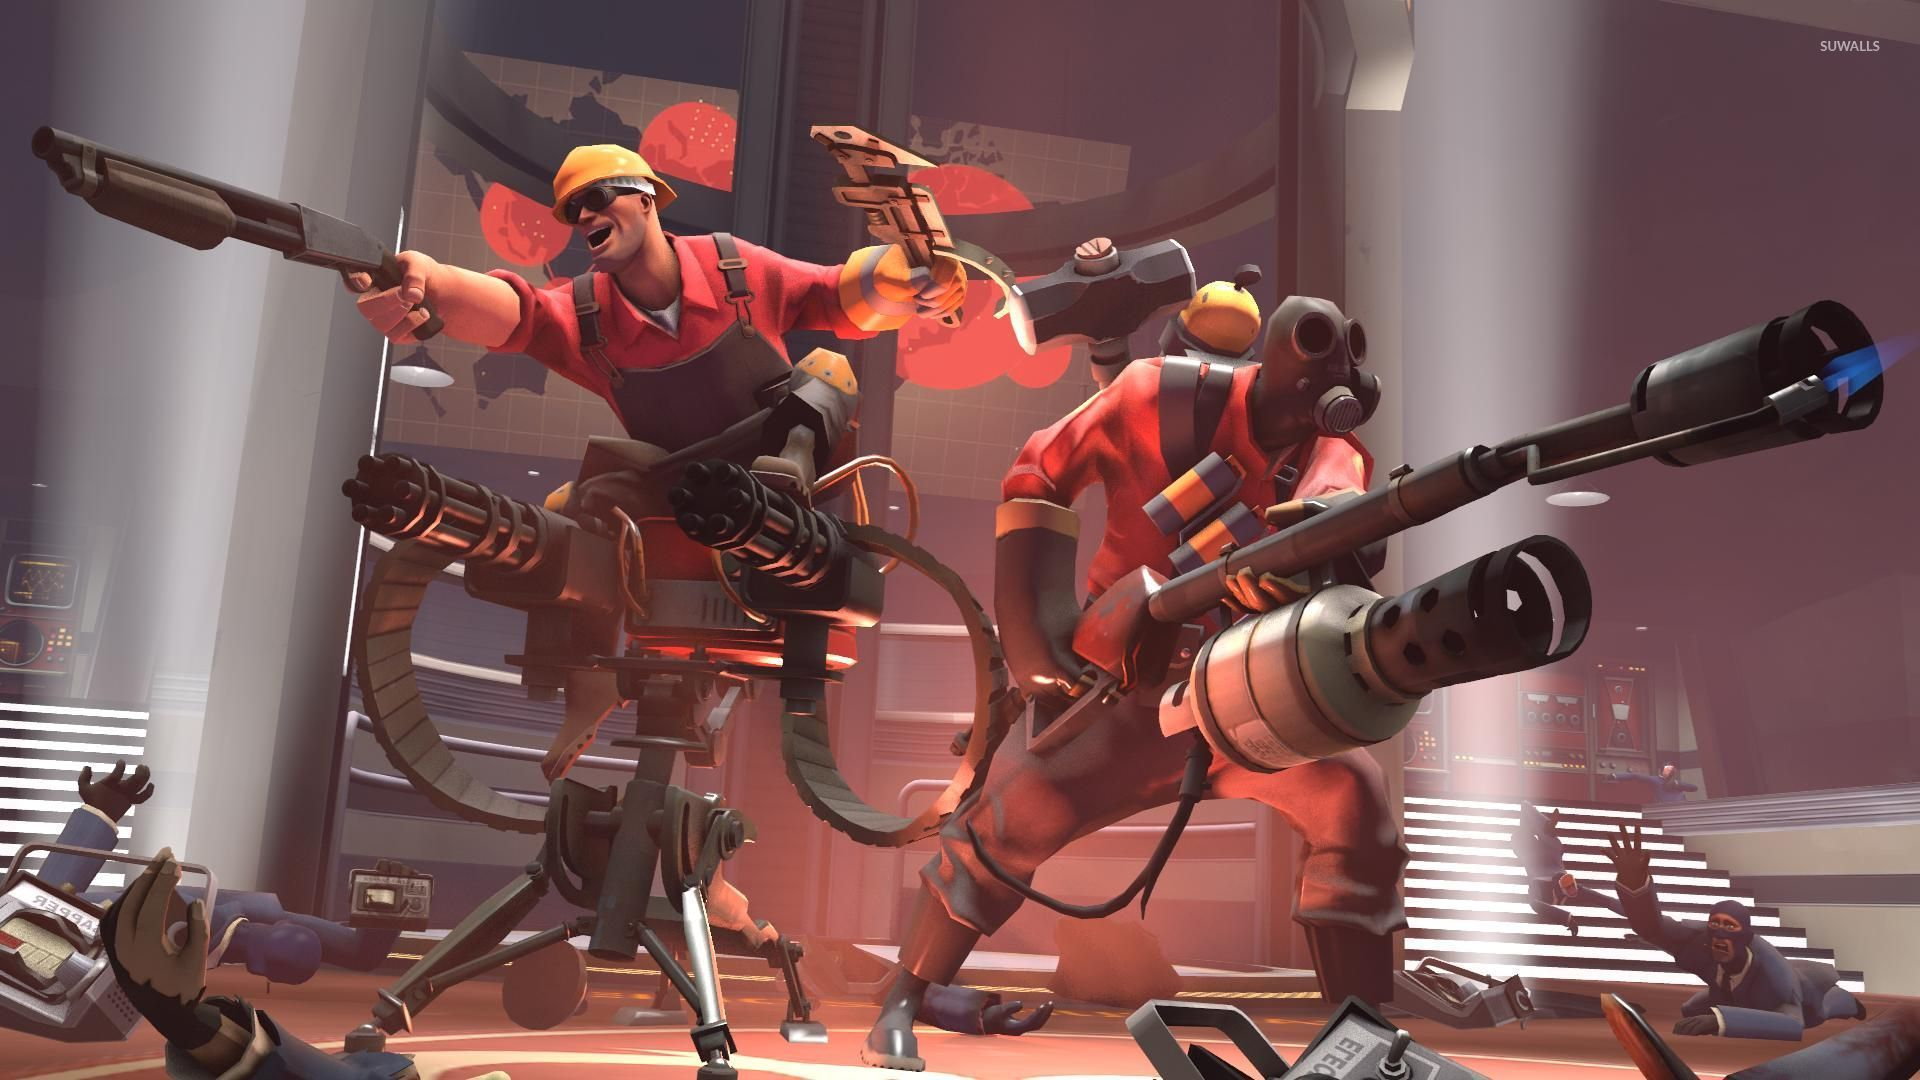 Tf2 4k Wallpapers Top Free Tf2 4k Backgrounds Wallpaperaccess